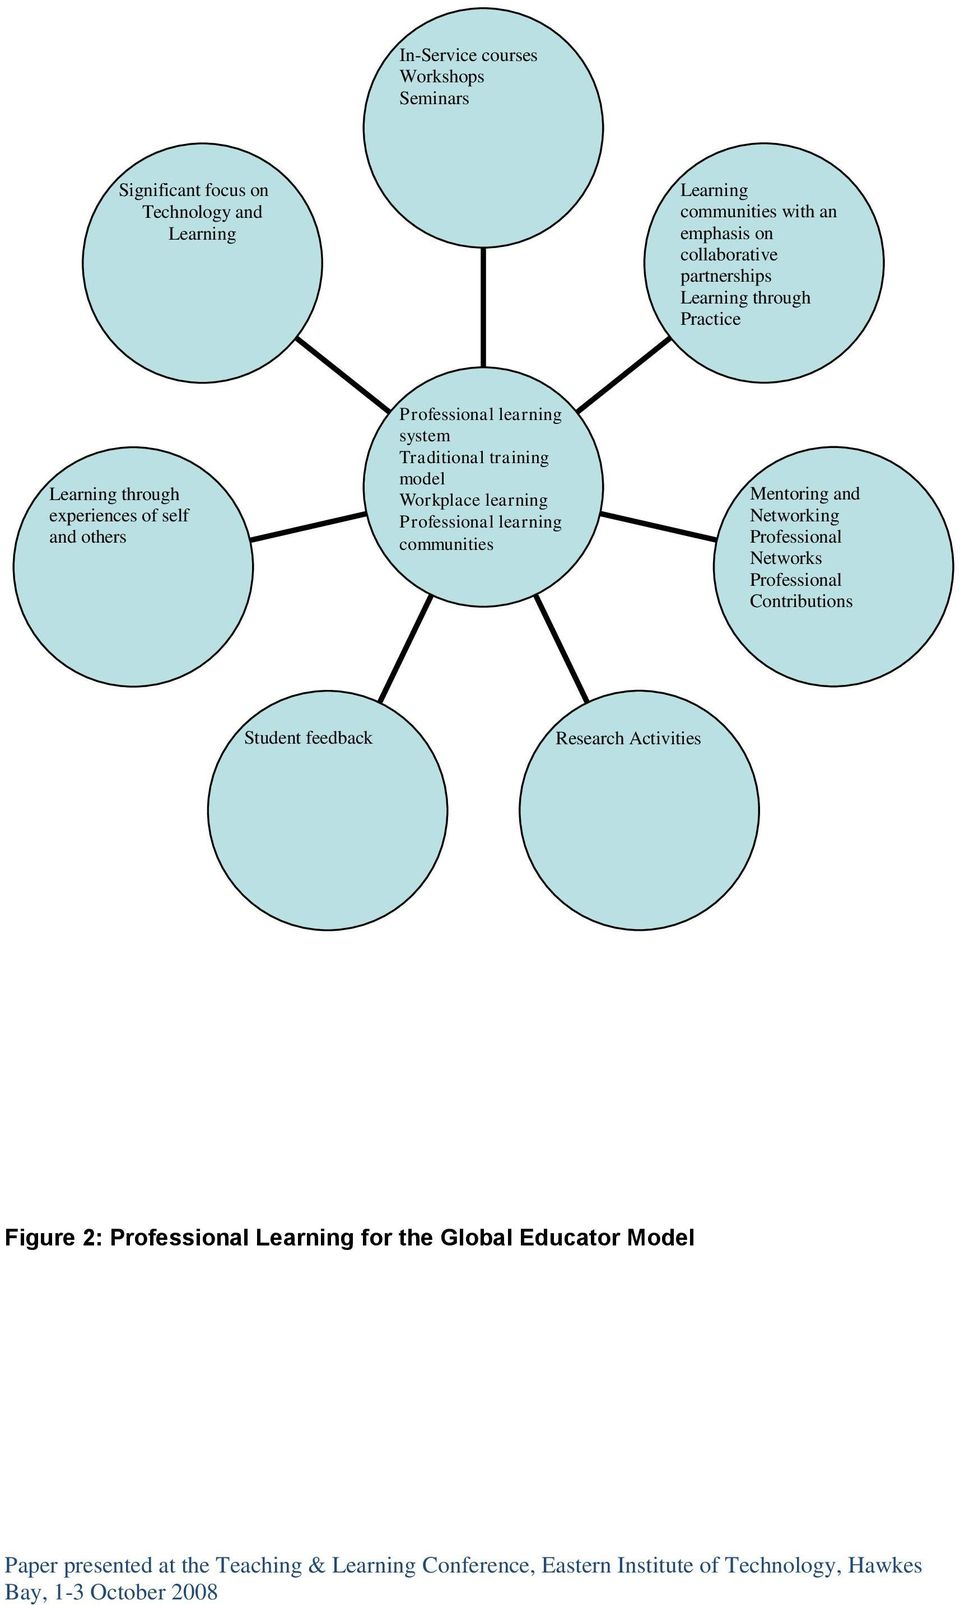 others learning system Traditional training model Workplace learning learning communities Mentoring and